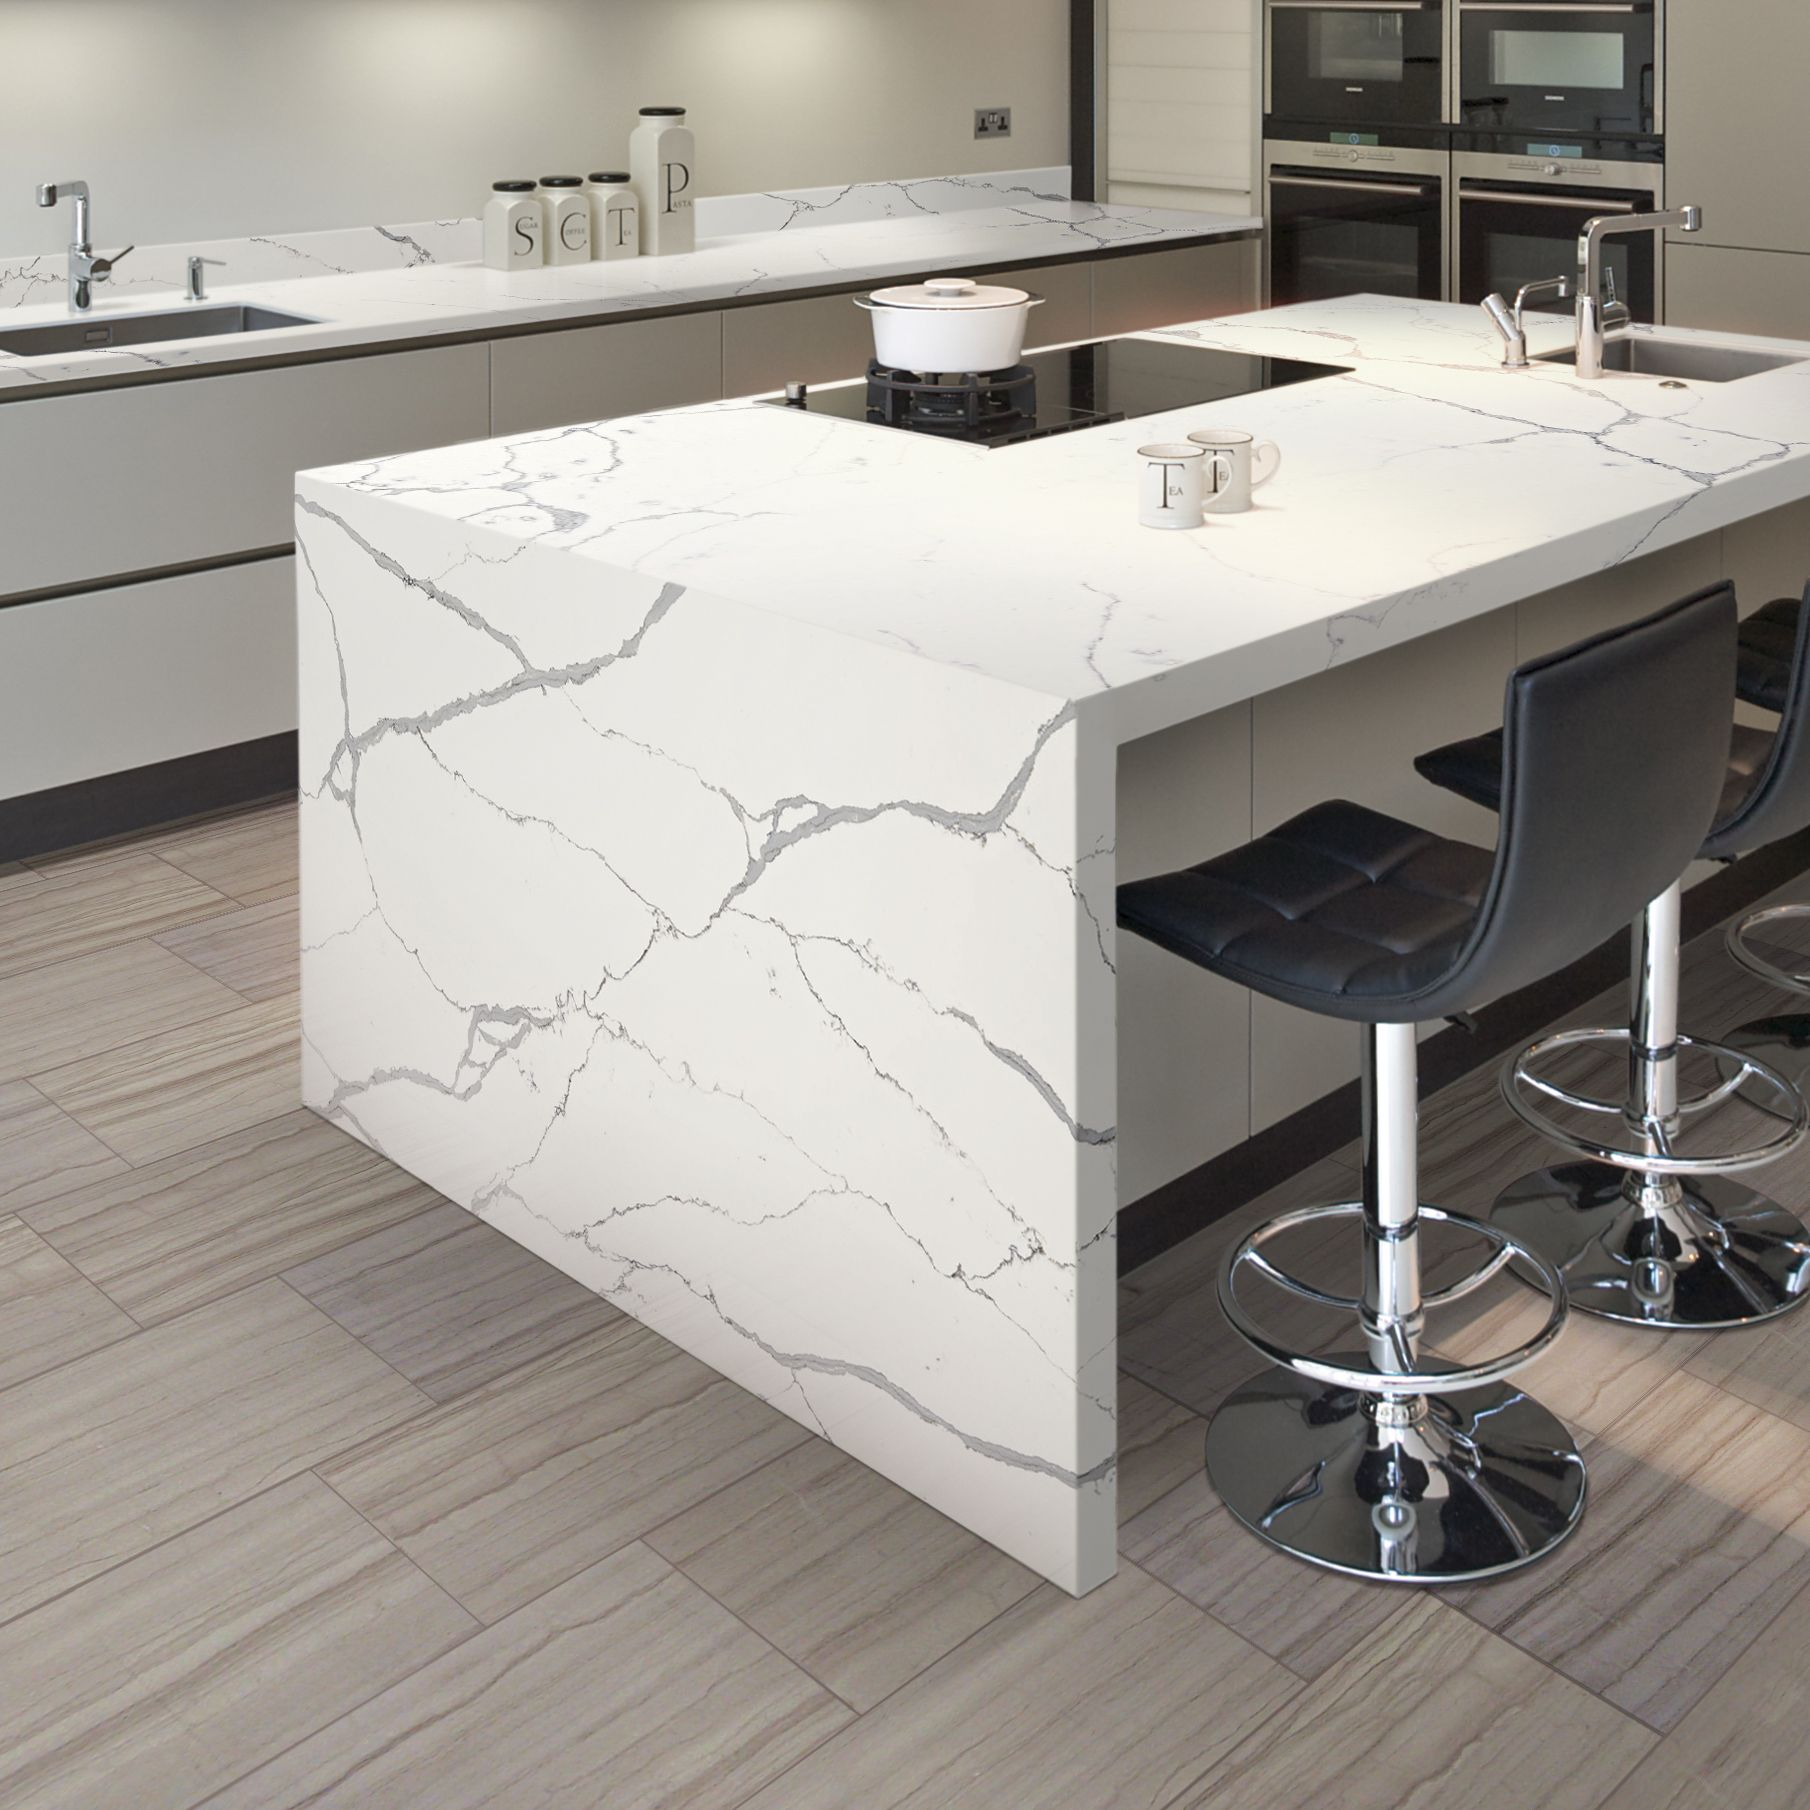 Marble Kitchen Counter Cabinet Pulls Photo Features One Quartz Surfaces In Statuary On